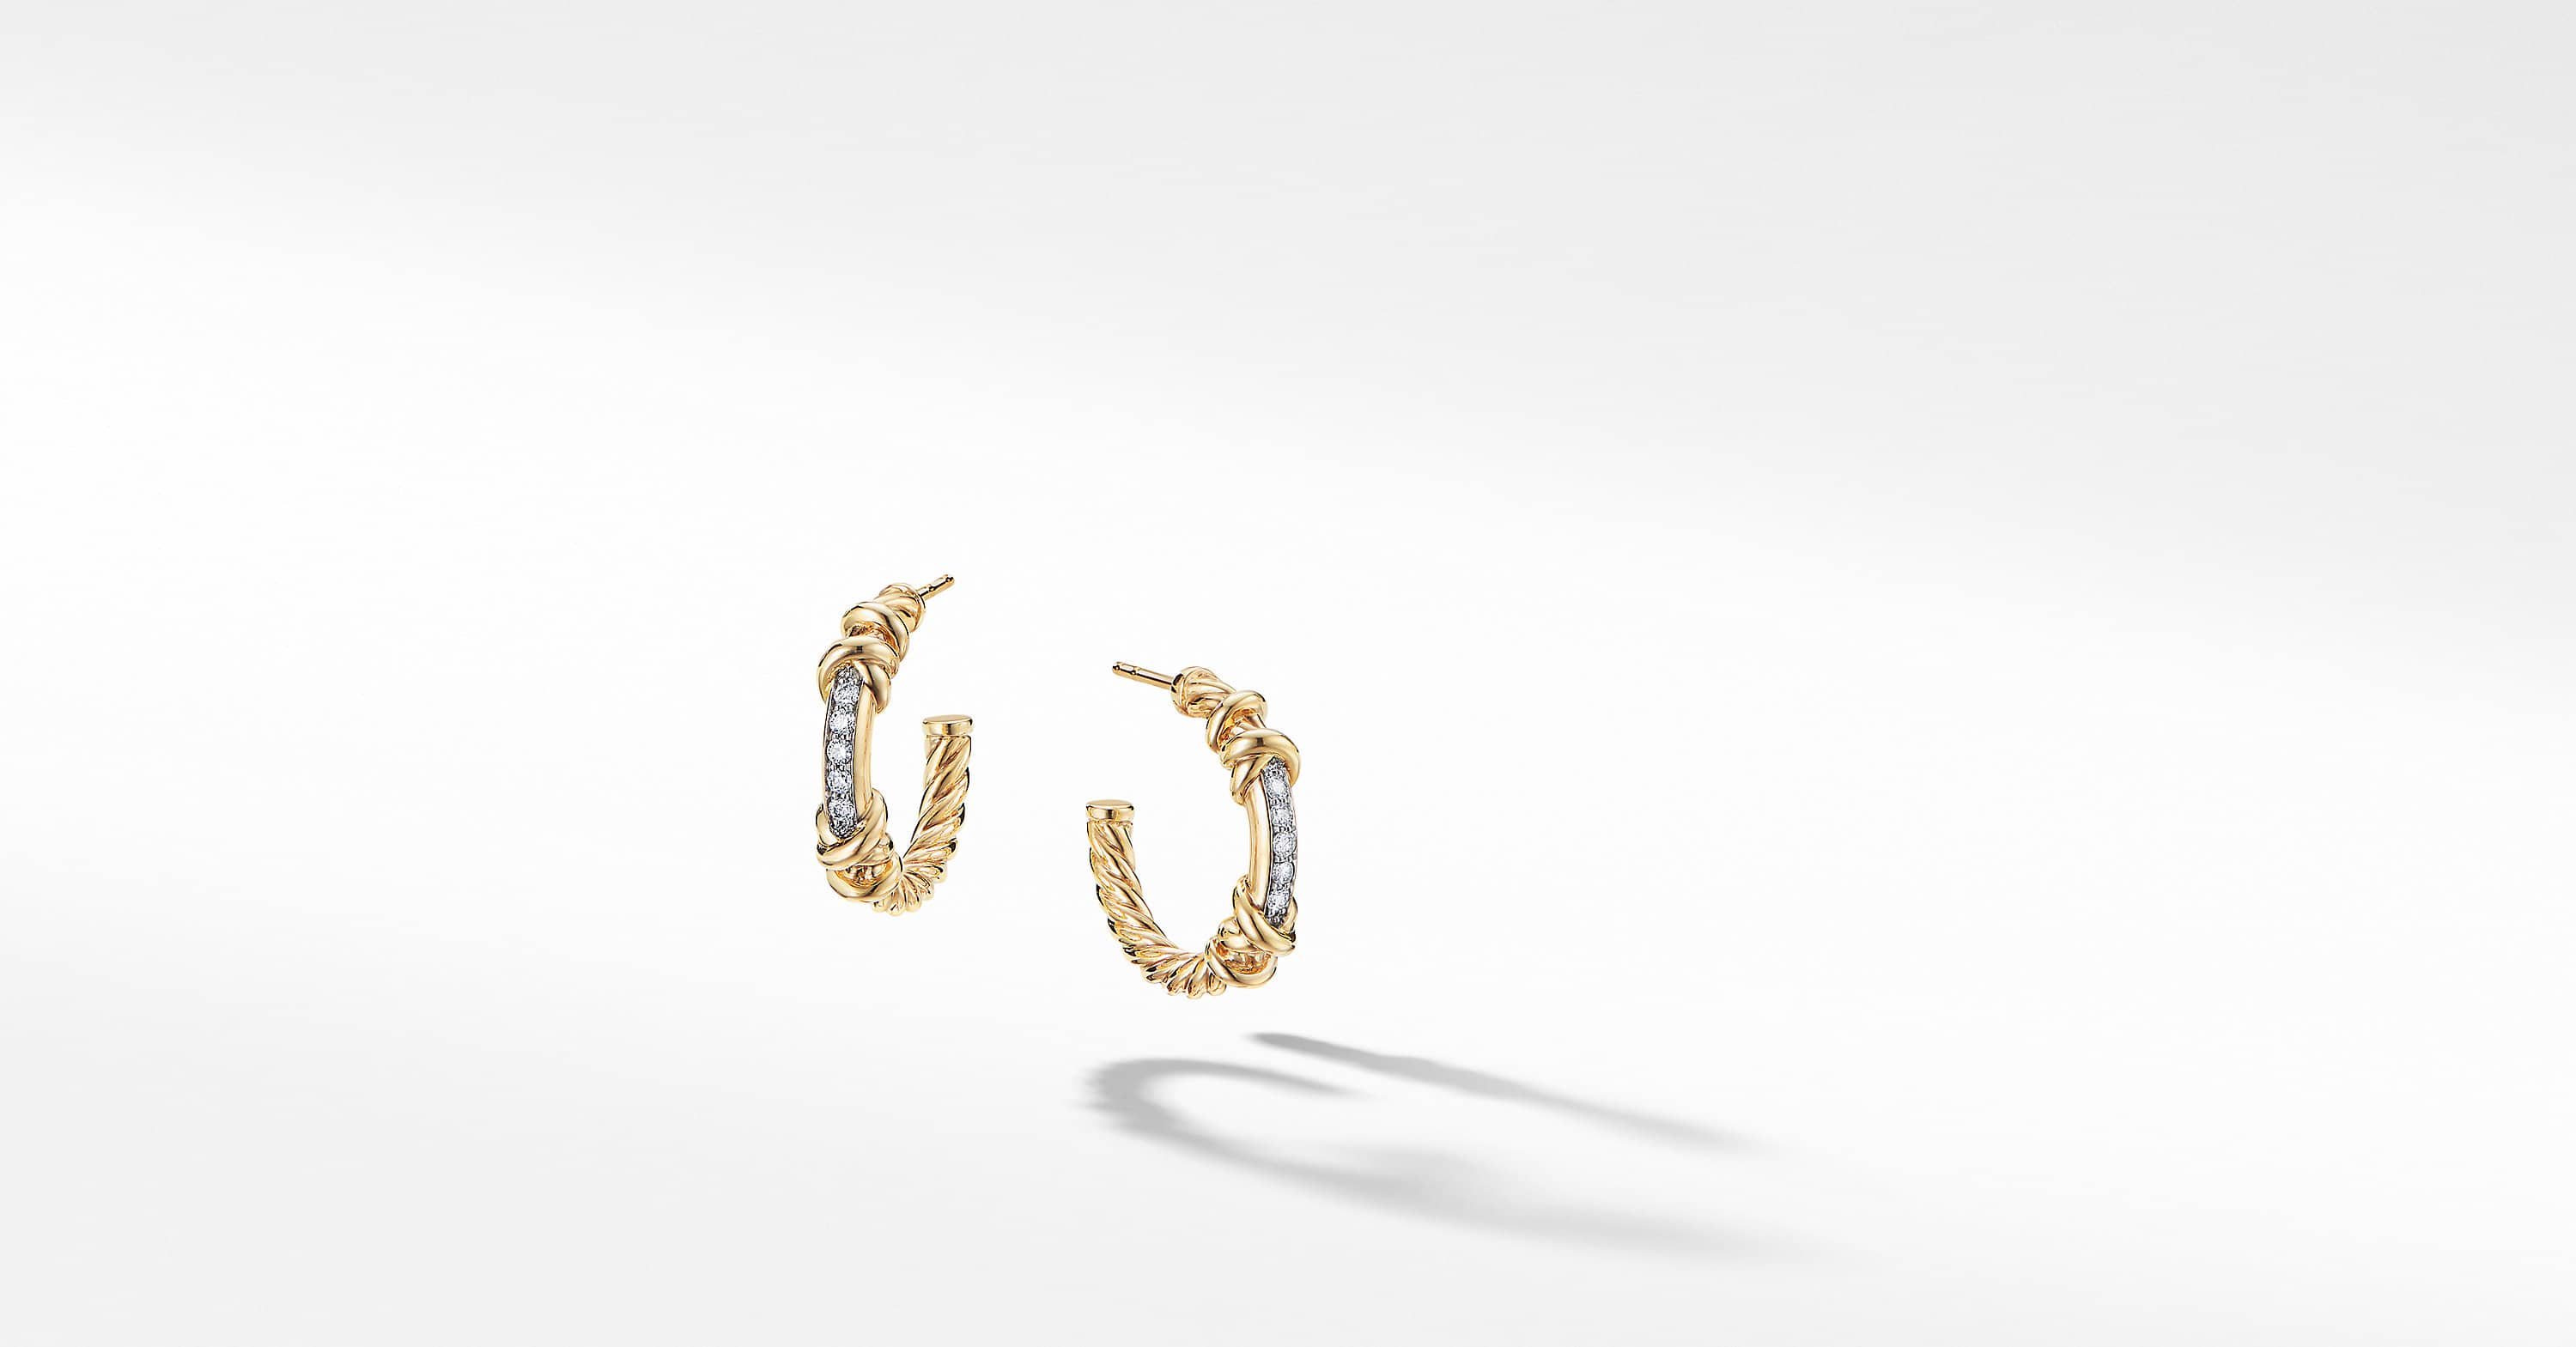 Petite Helena Hoop Earrings in 18K Yellow Gold with Diamonds, 3/4""